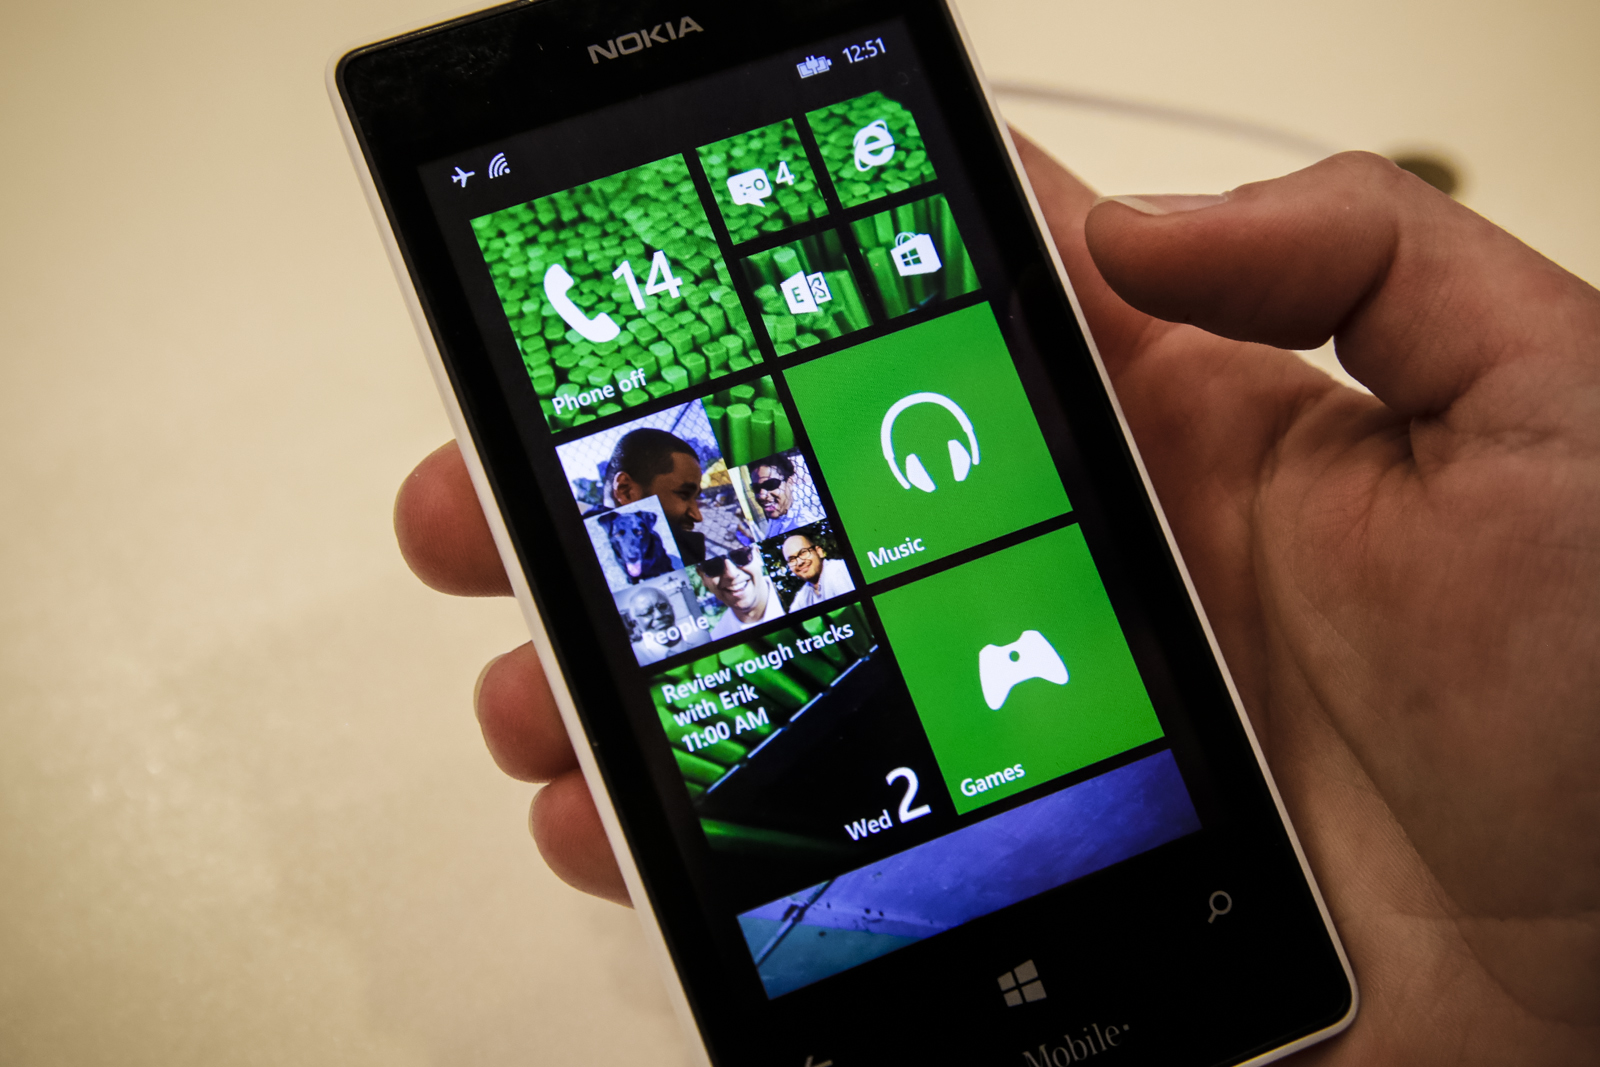 11 Things You Need To Know About Windows Phone 8 1